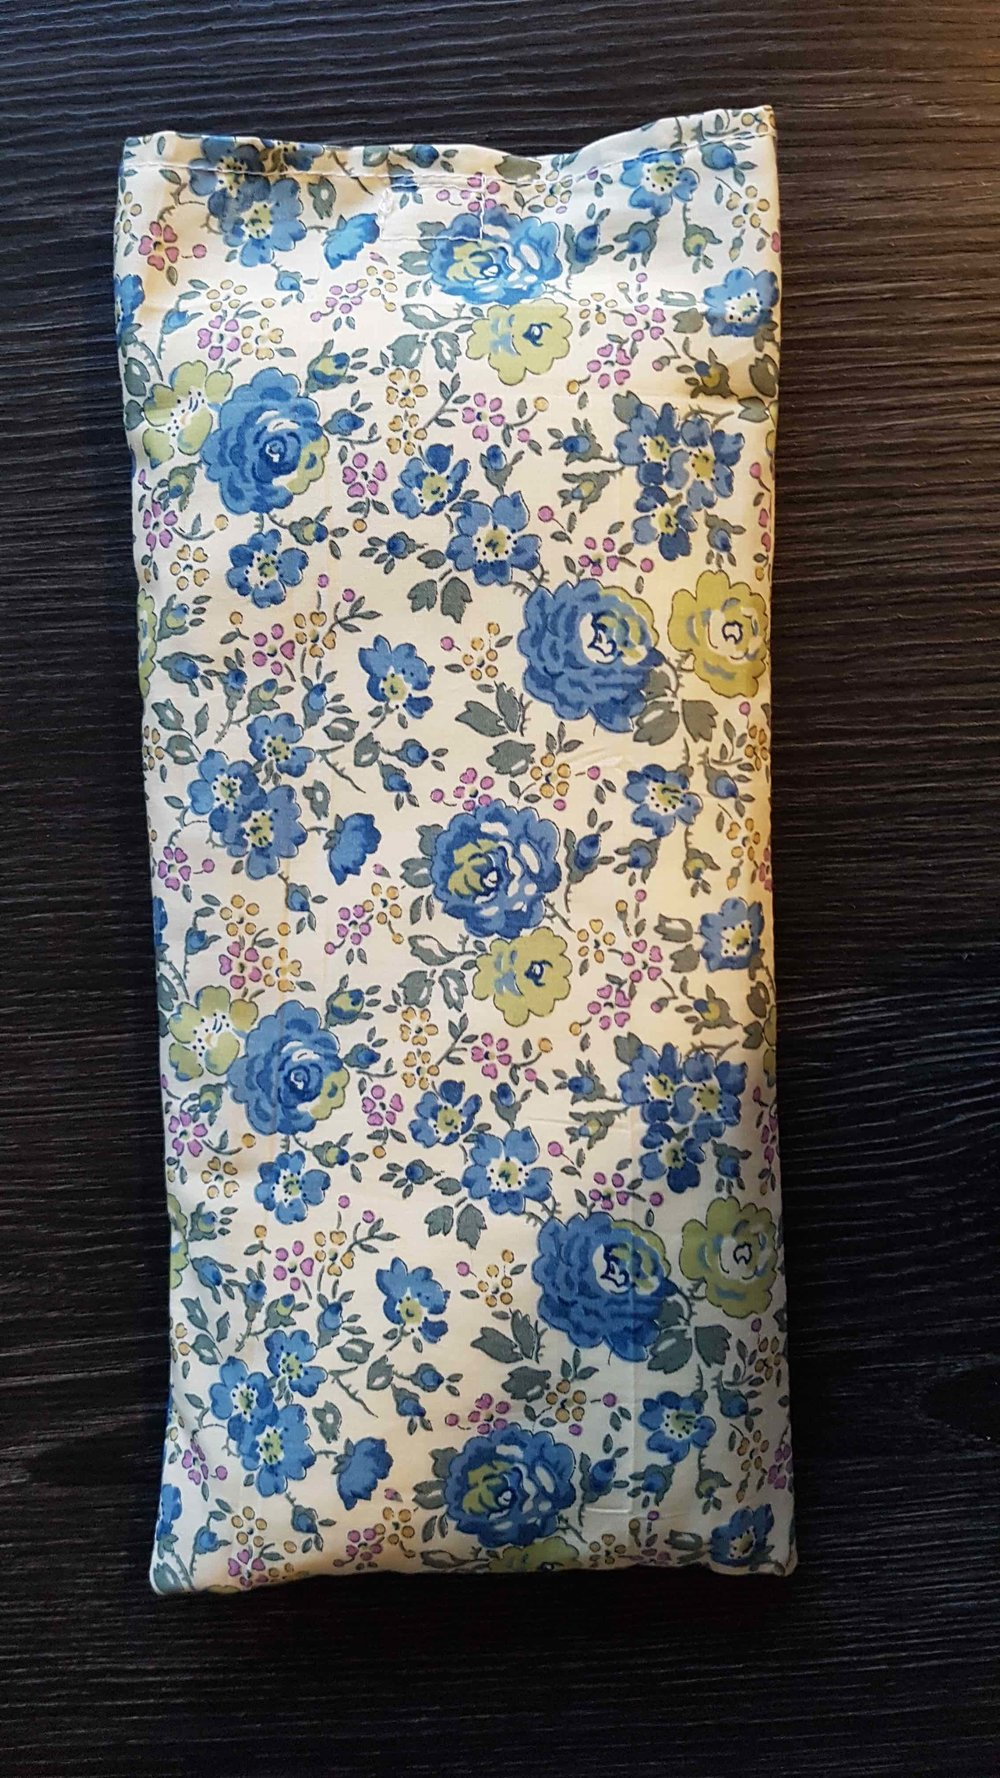 roses bleues, 28€